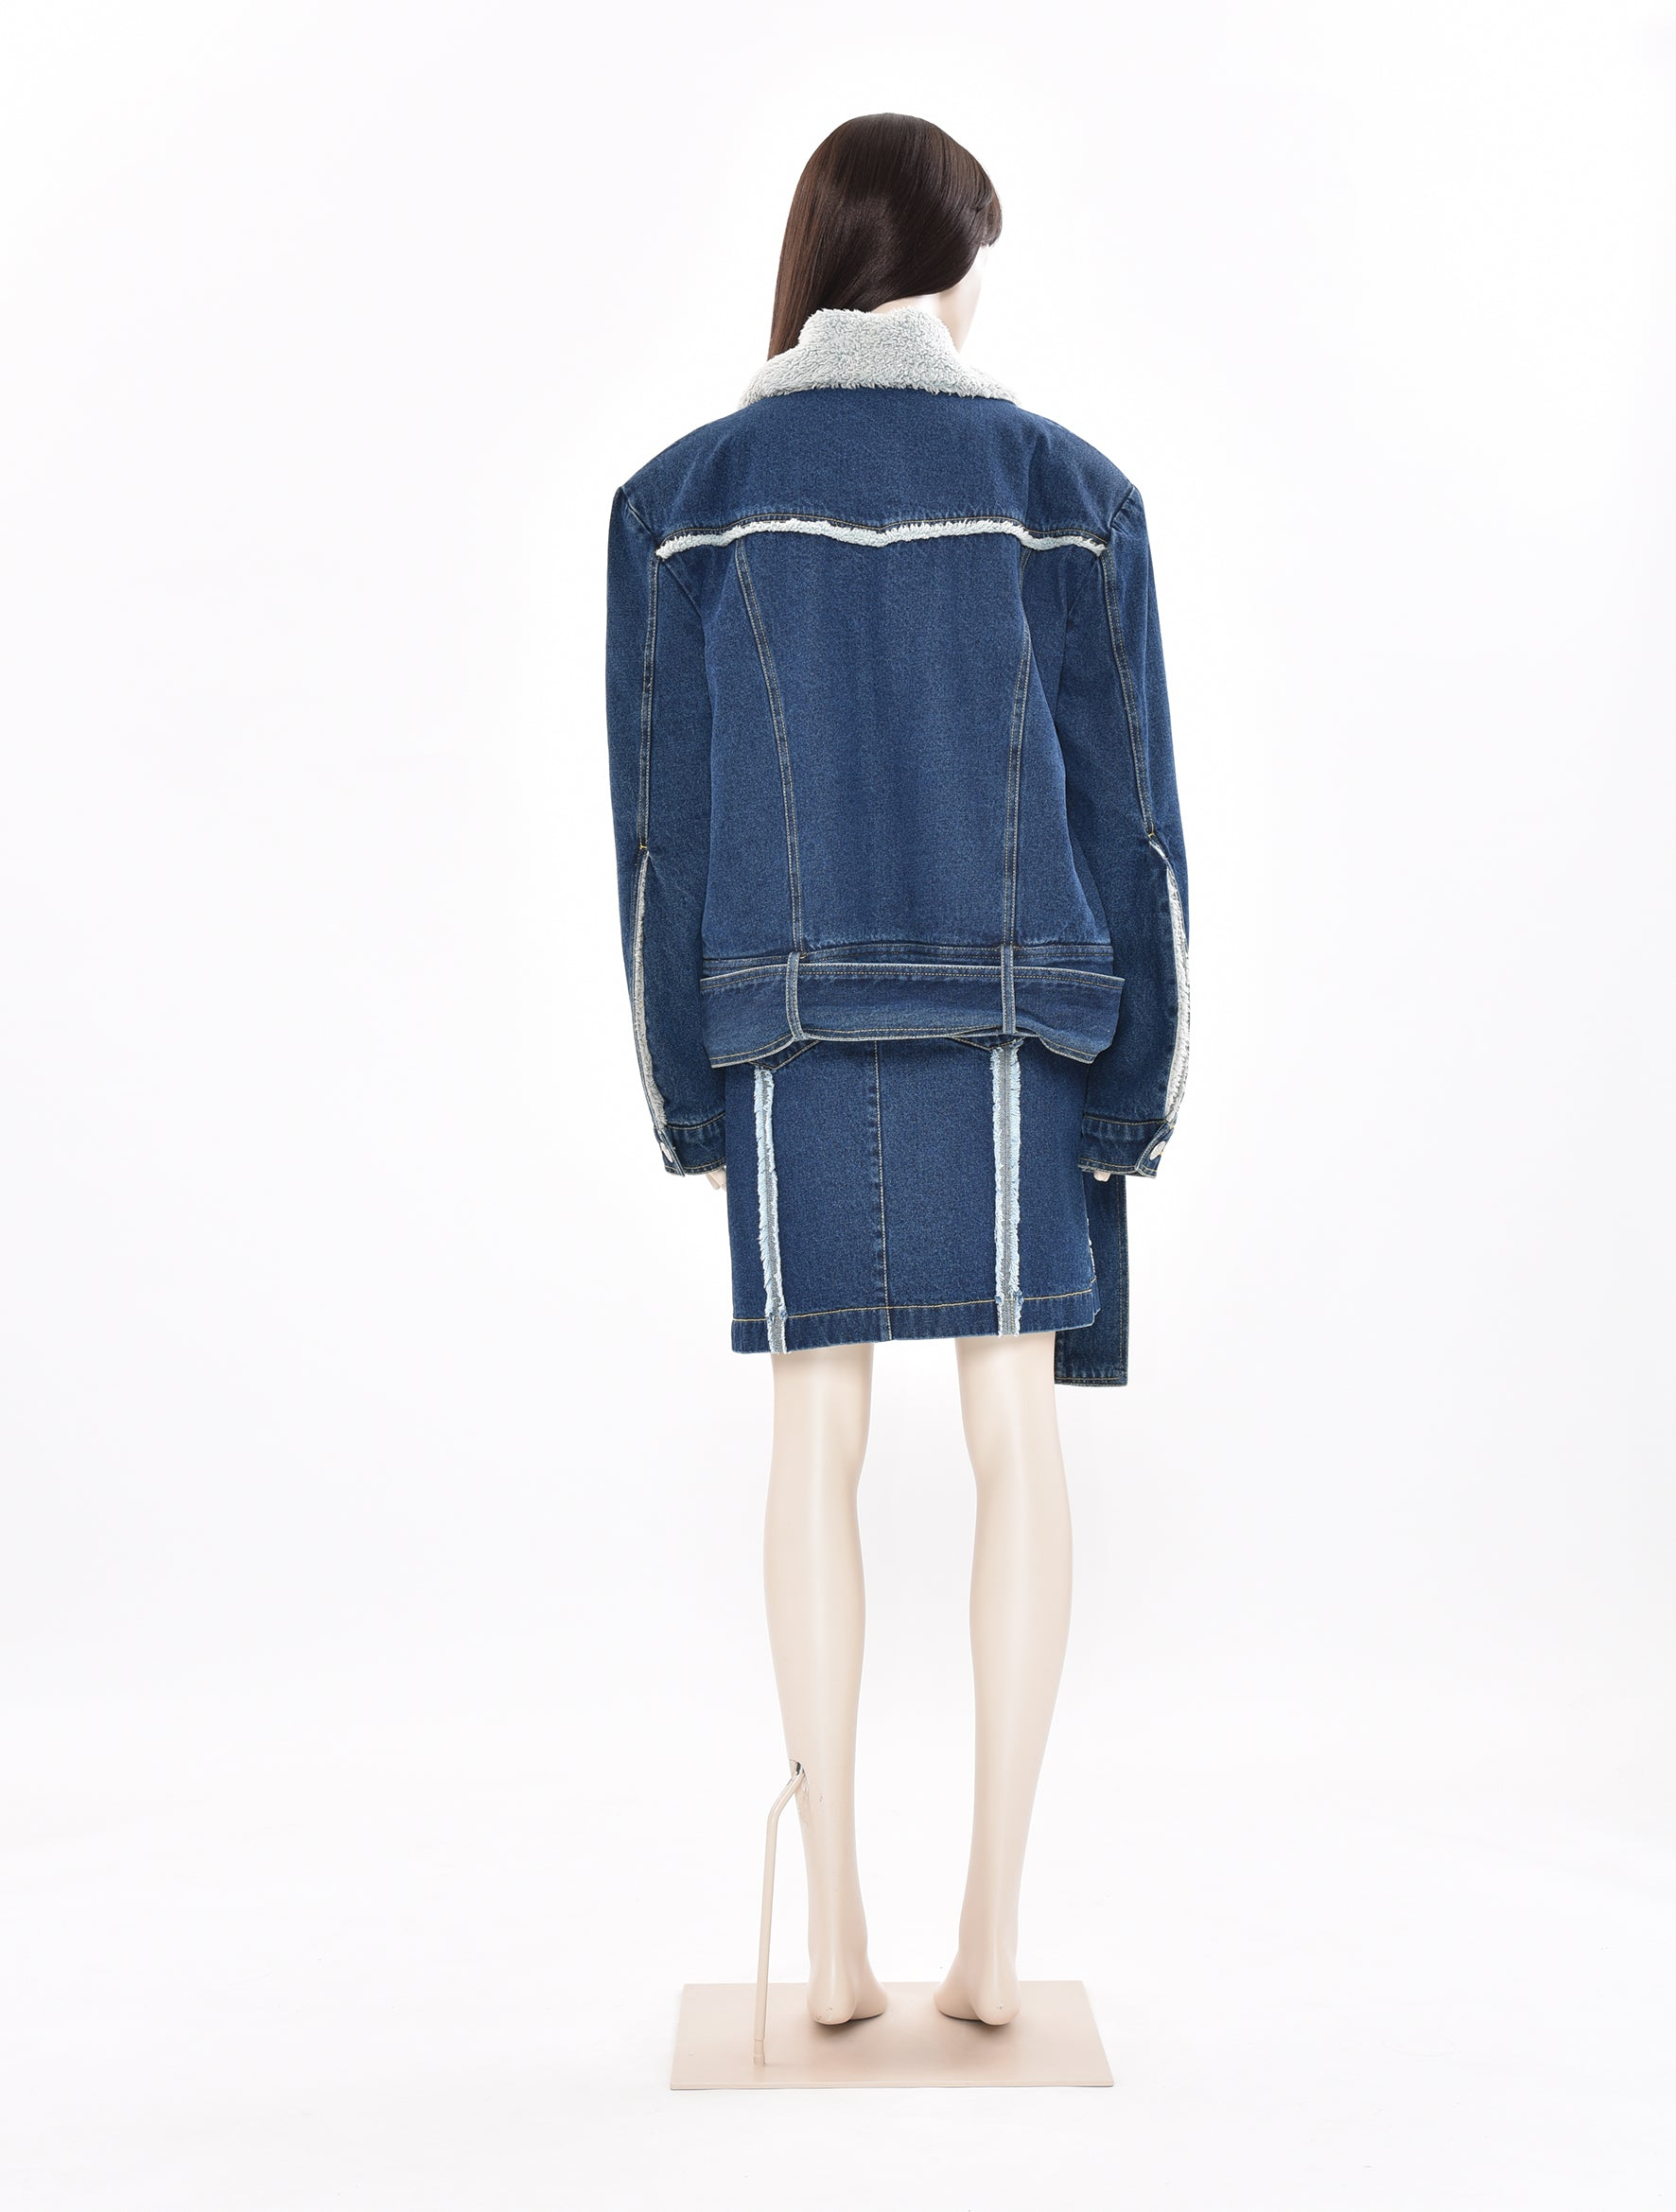 x DDP Navy Denim Jacket